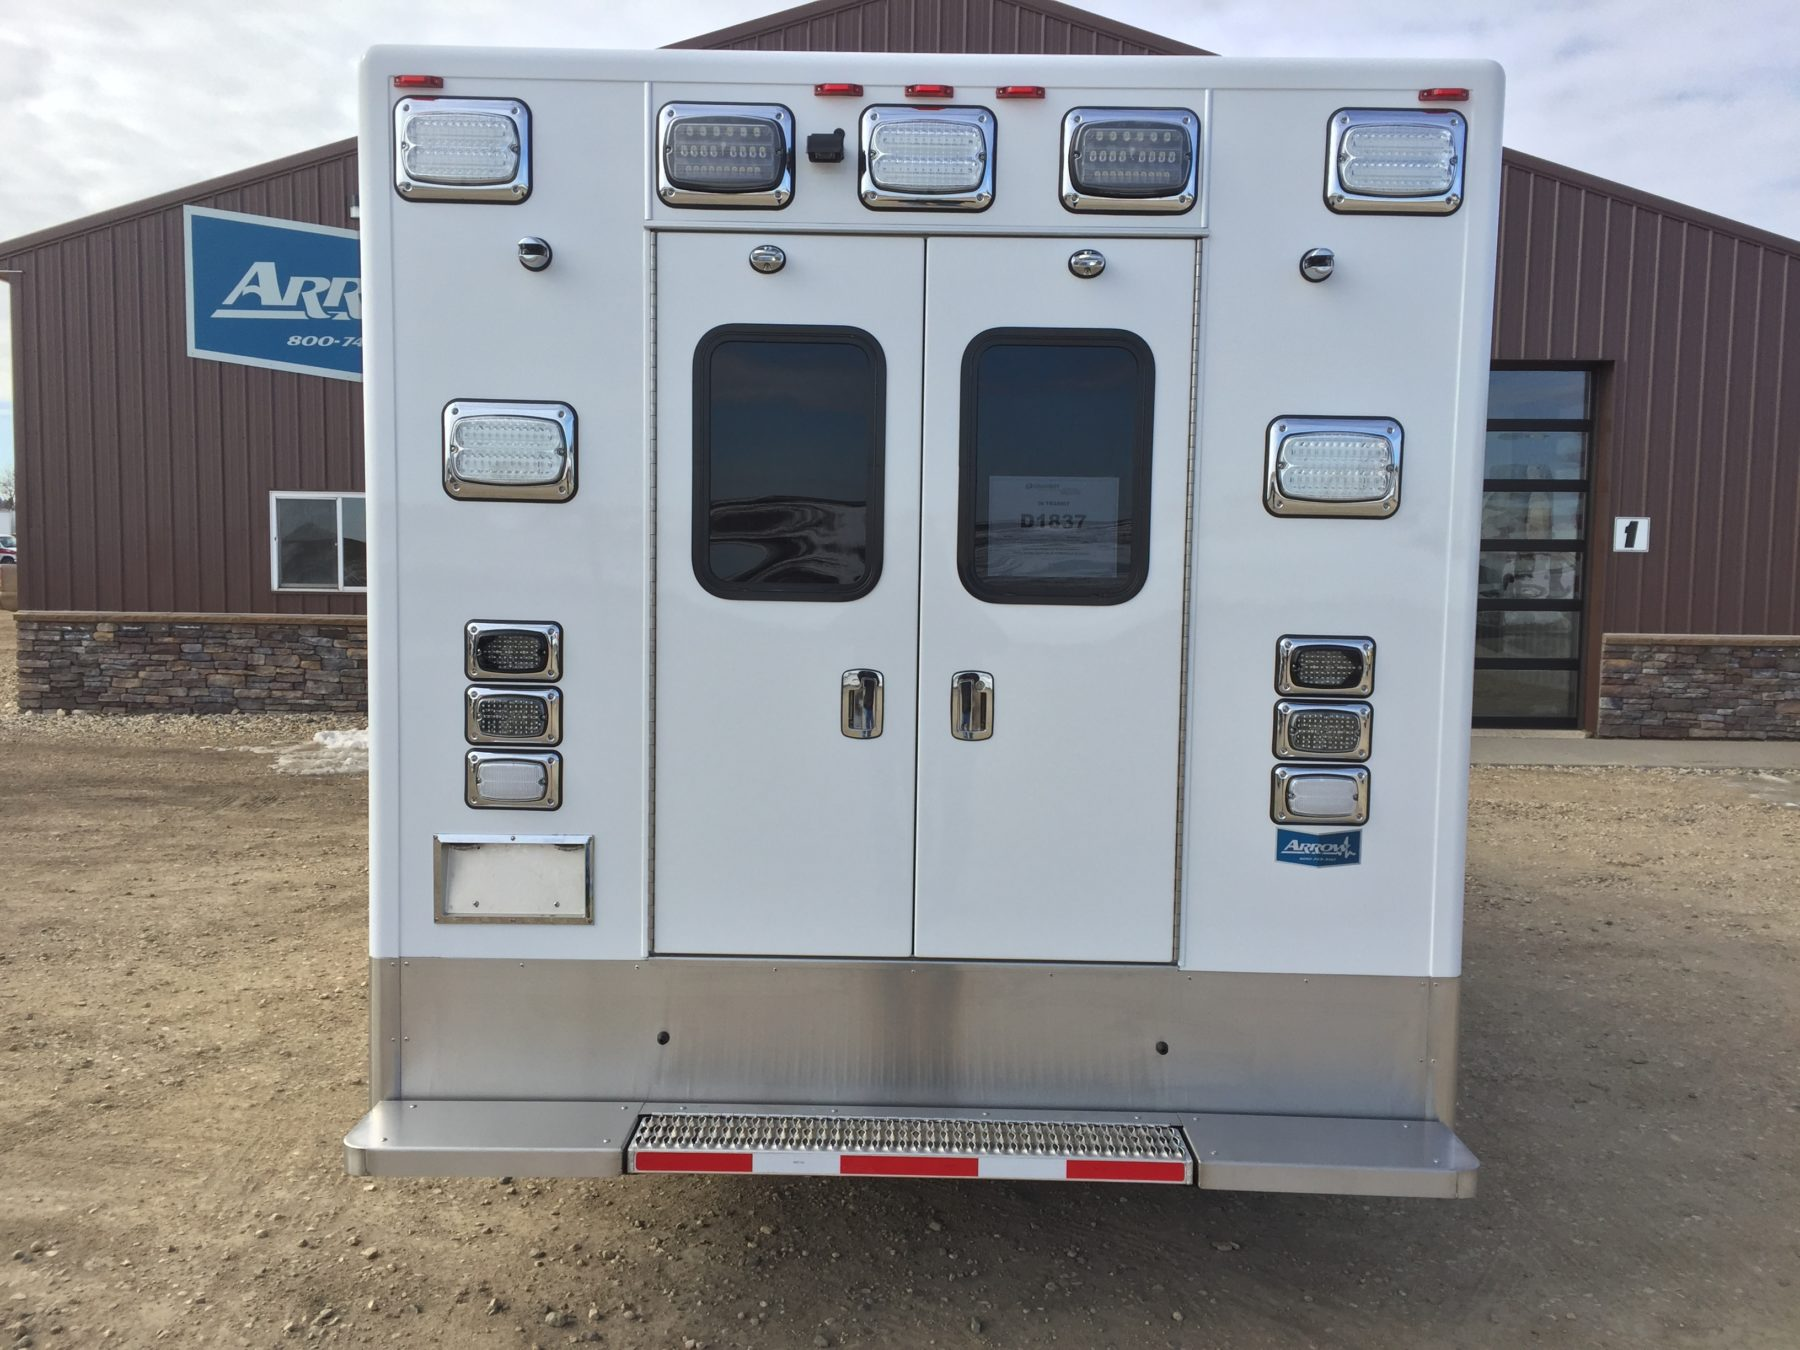 2017 Ram 4500 4x4 Heavy Duty Ambulance For Sale – Picture 10